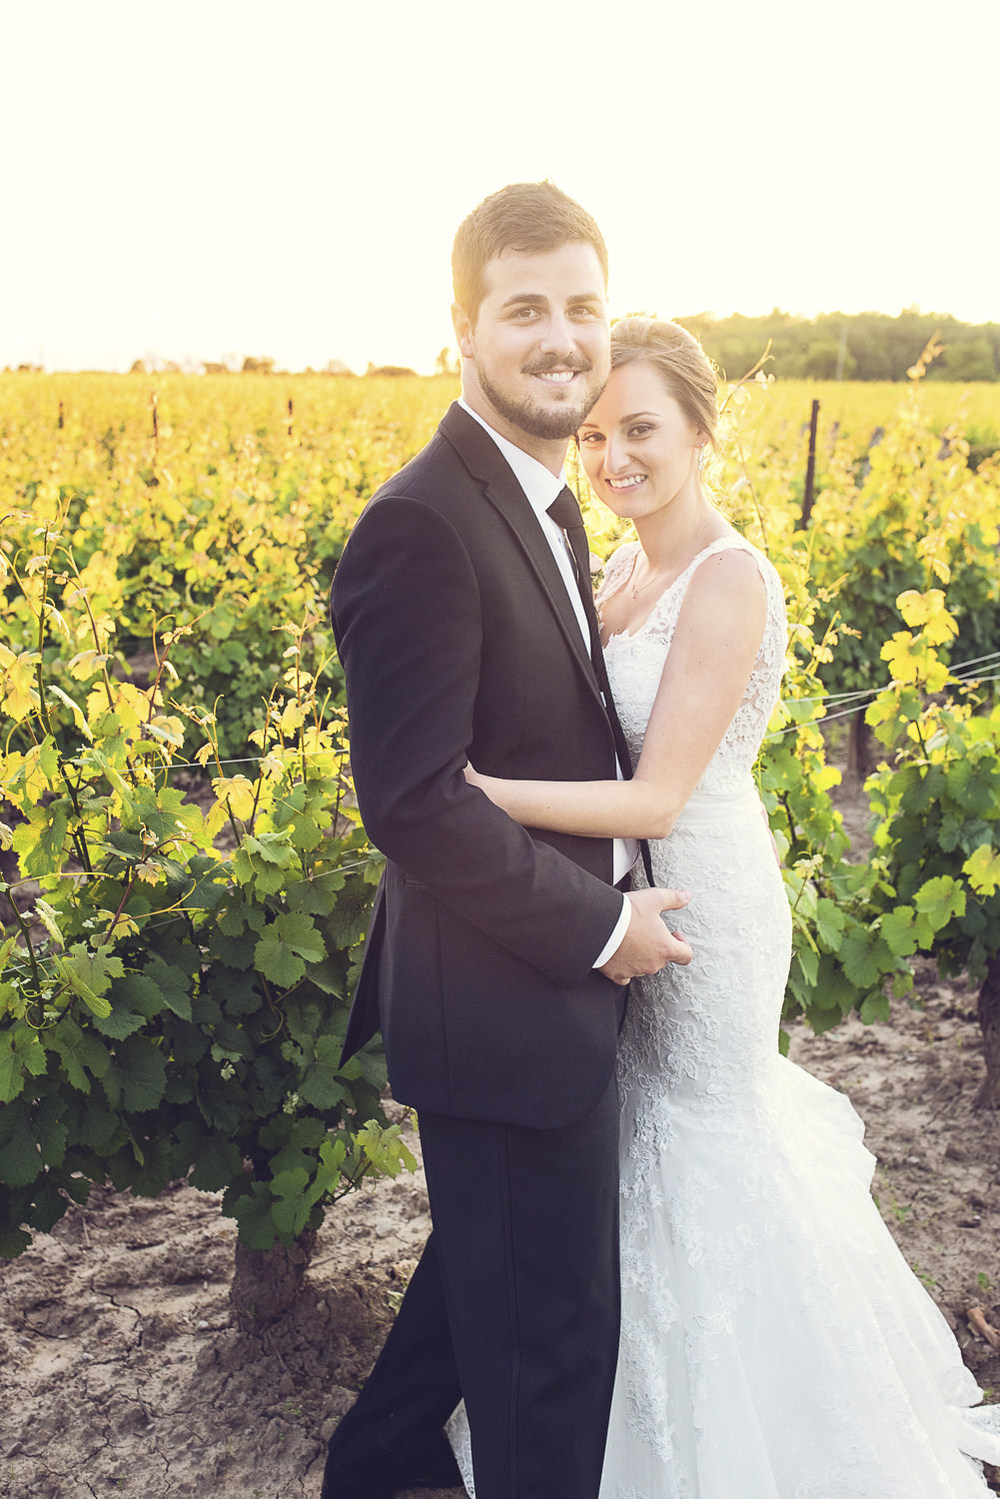 Niagara-Wedding-Stephanie-Evan-Chateau-Des-Charmes-vineyard-photography-by-Renaissance-Studio-Photography-0031.JPG